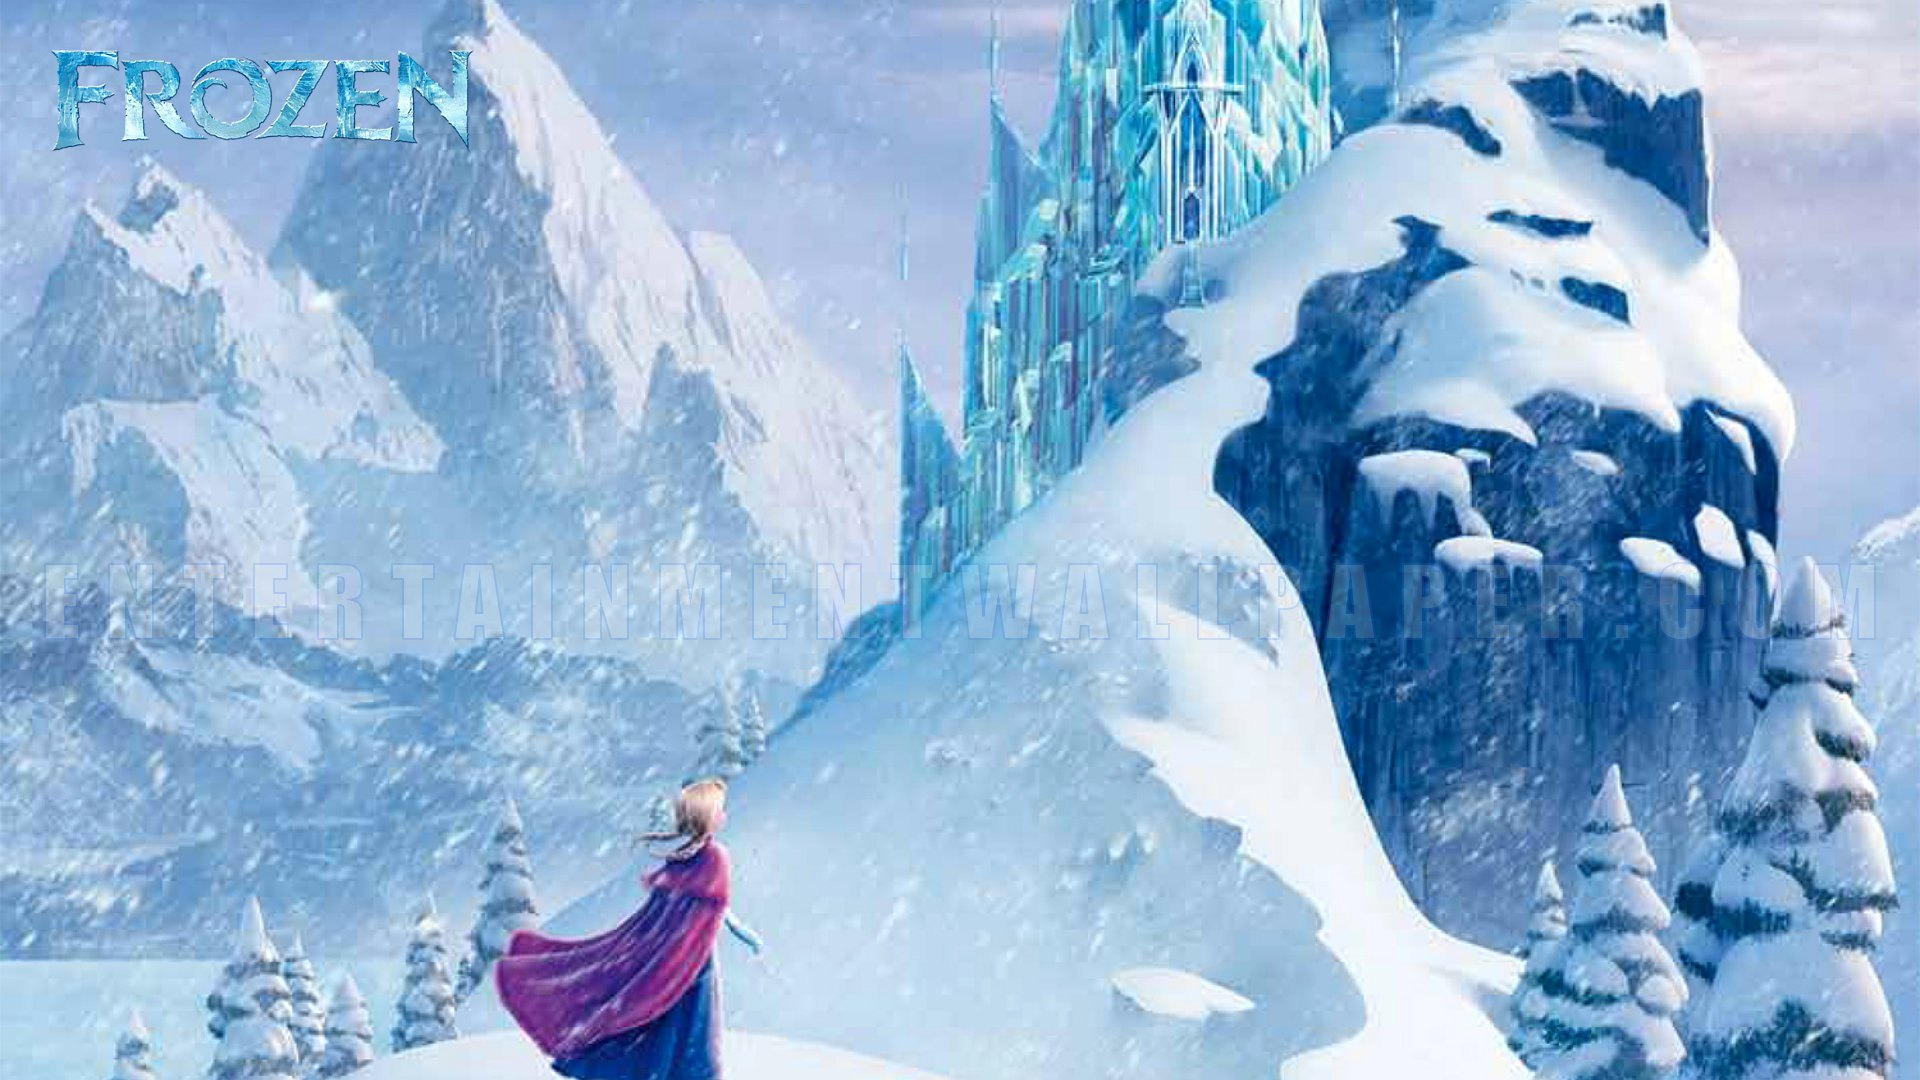 frozen images frozen hd wallpaper and background photos